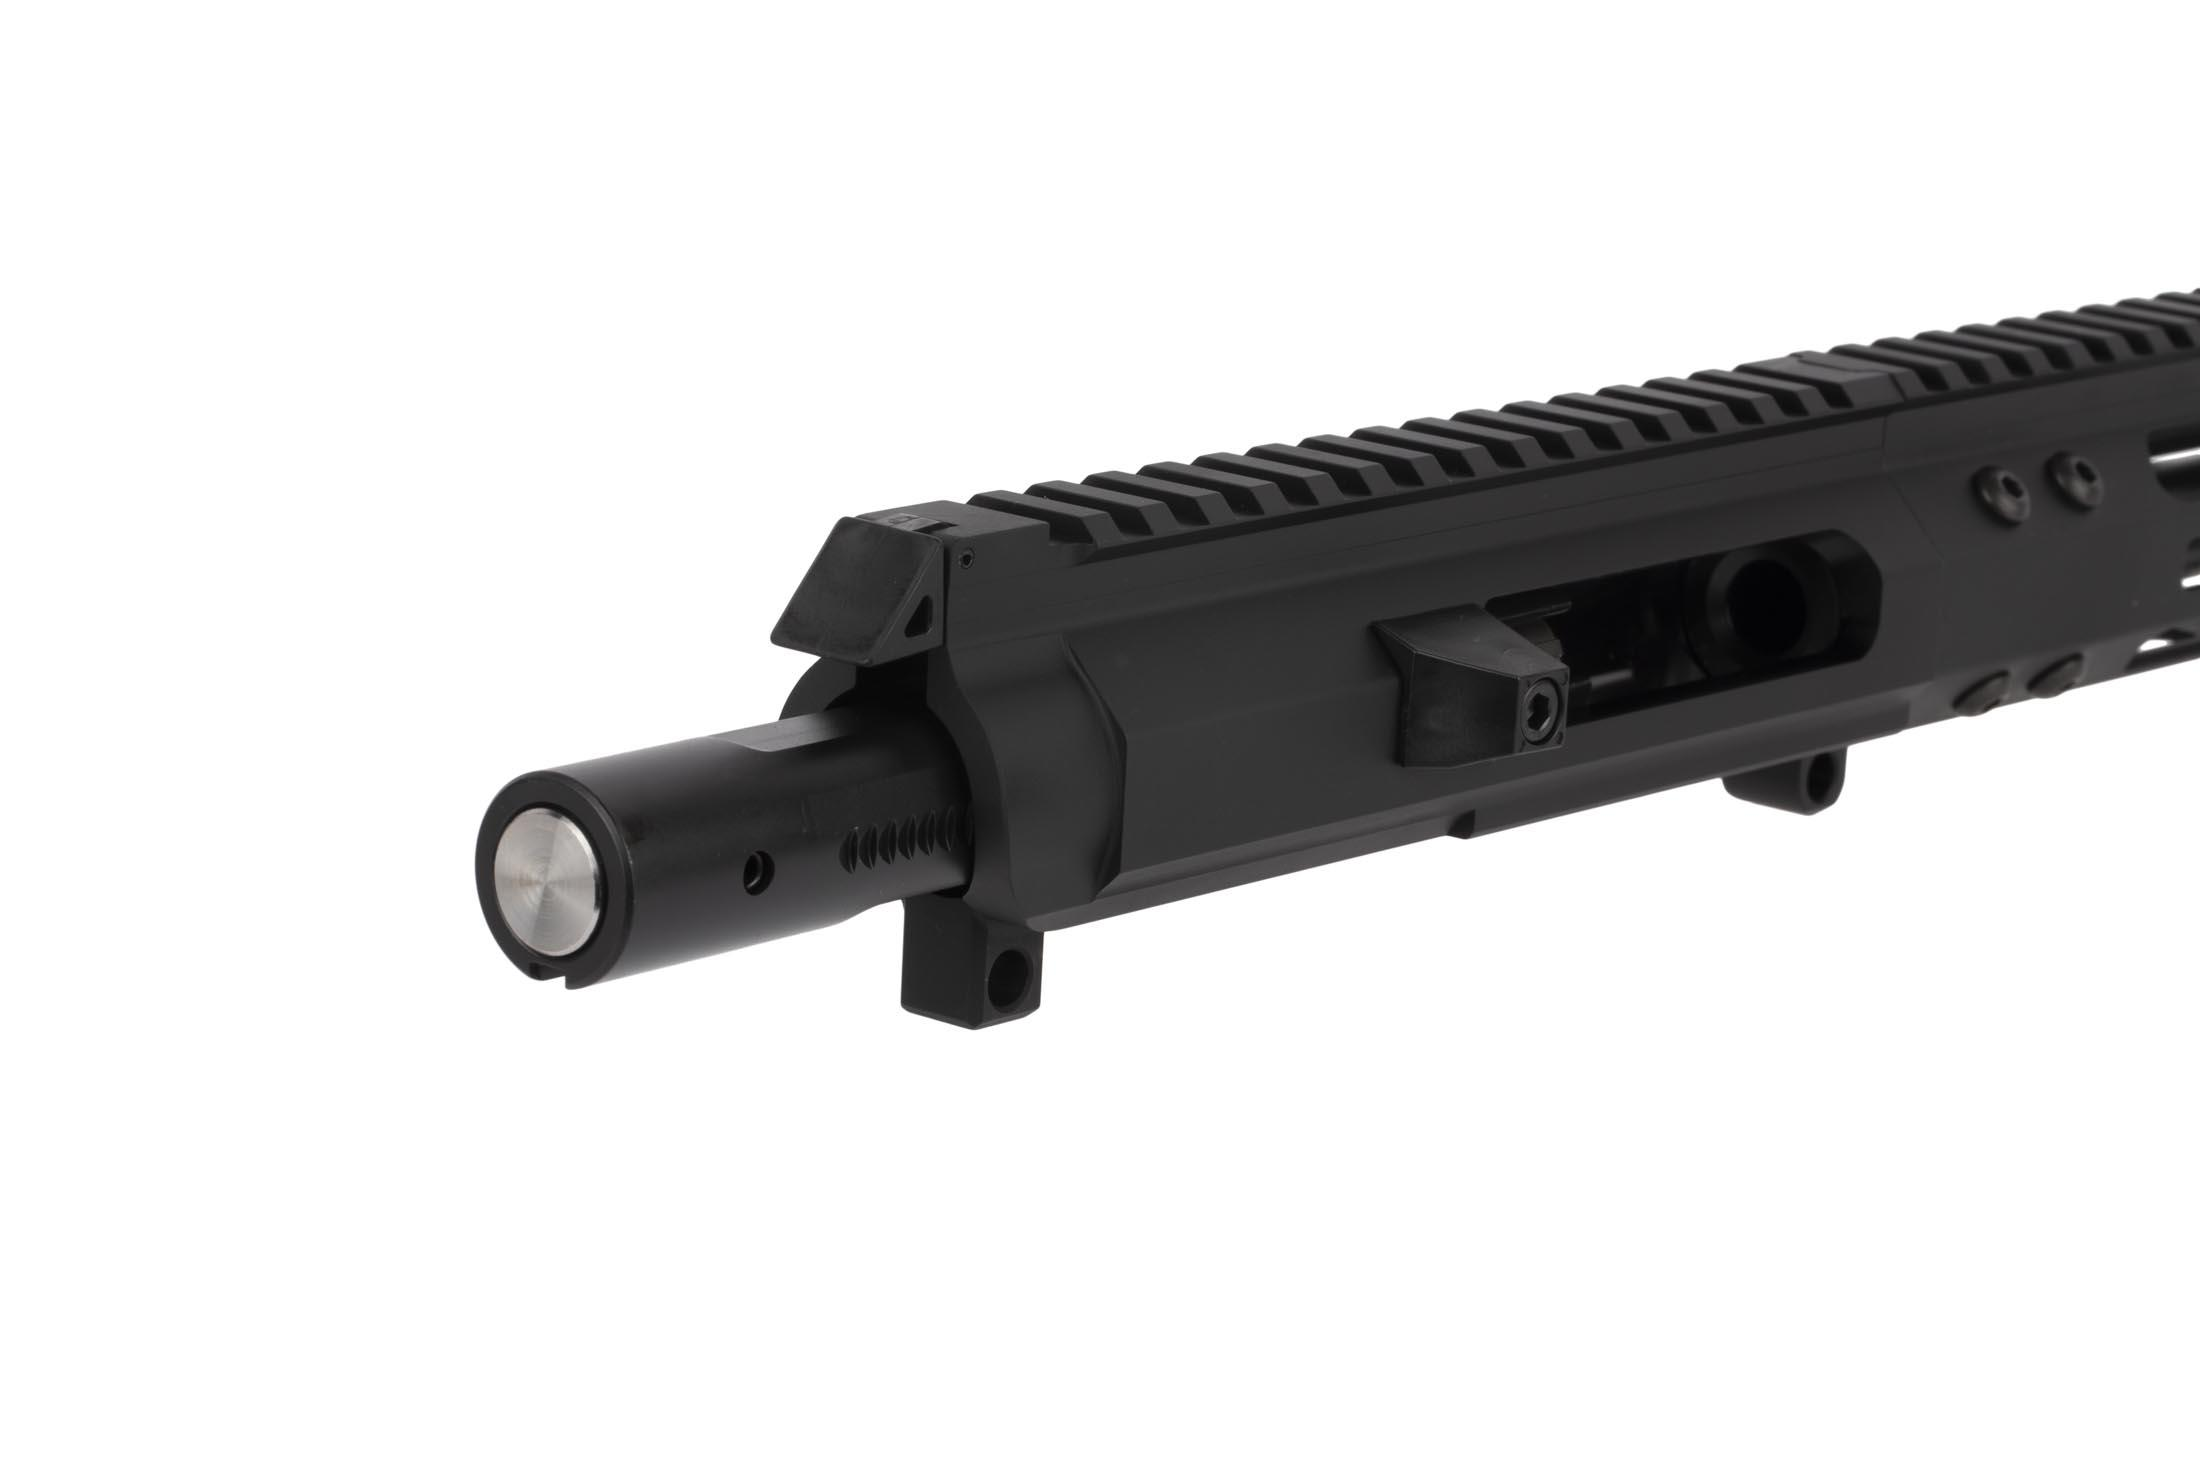 FM Products M-LOK equipped 8.5in .45 ACP complete upper receiver for the AR-15 is equipped with a heavy duty .45 ACP tuned bolt carrier group